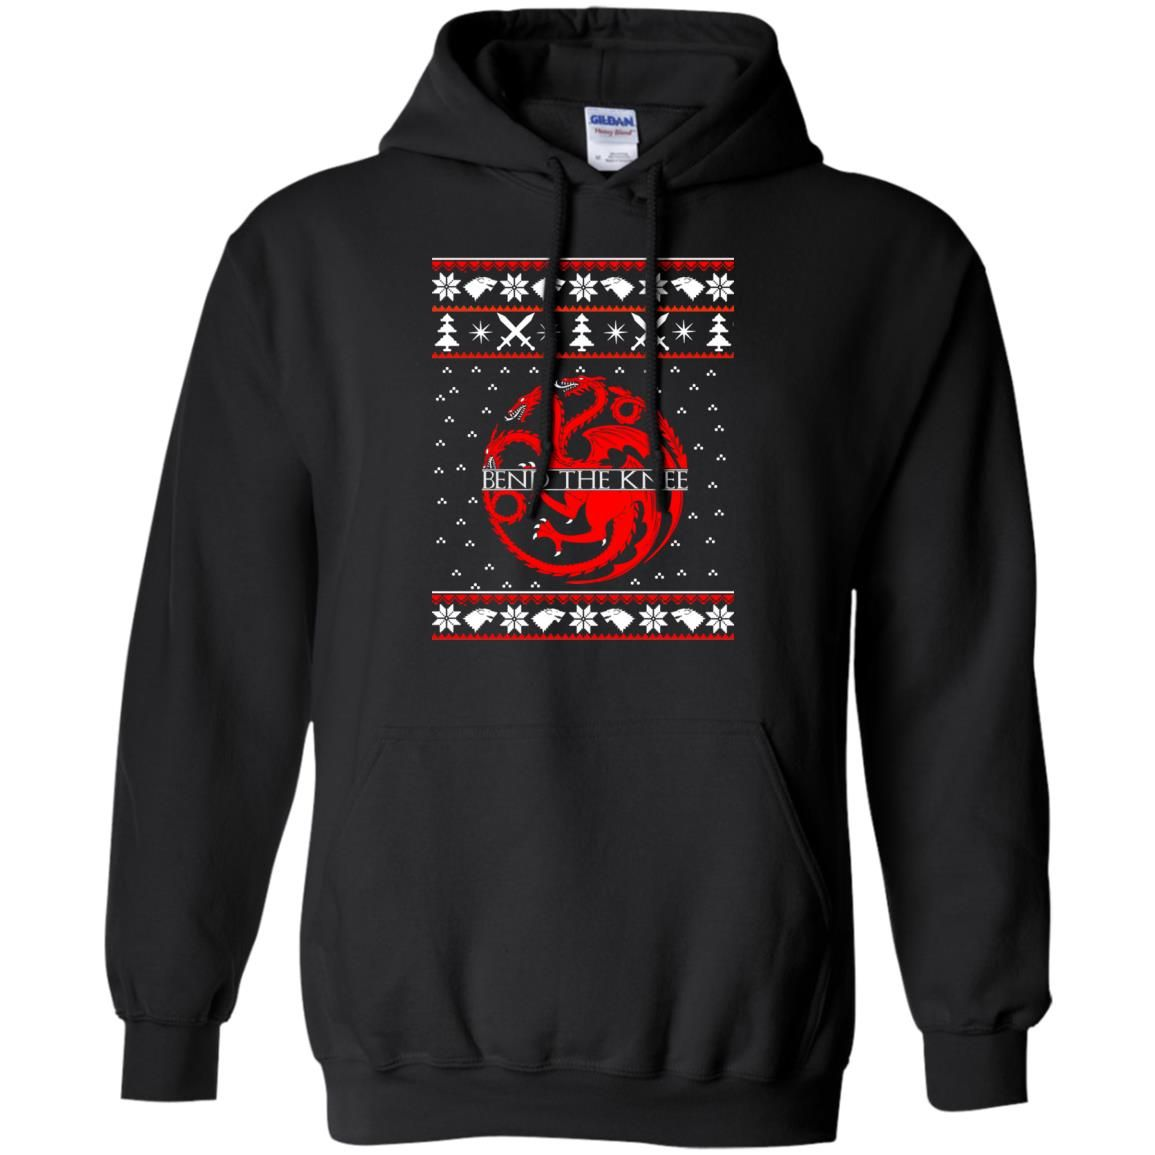 image 866 - Game of Thrones Bend the knee Christmas sweater, long sleeve